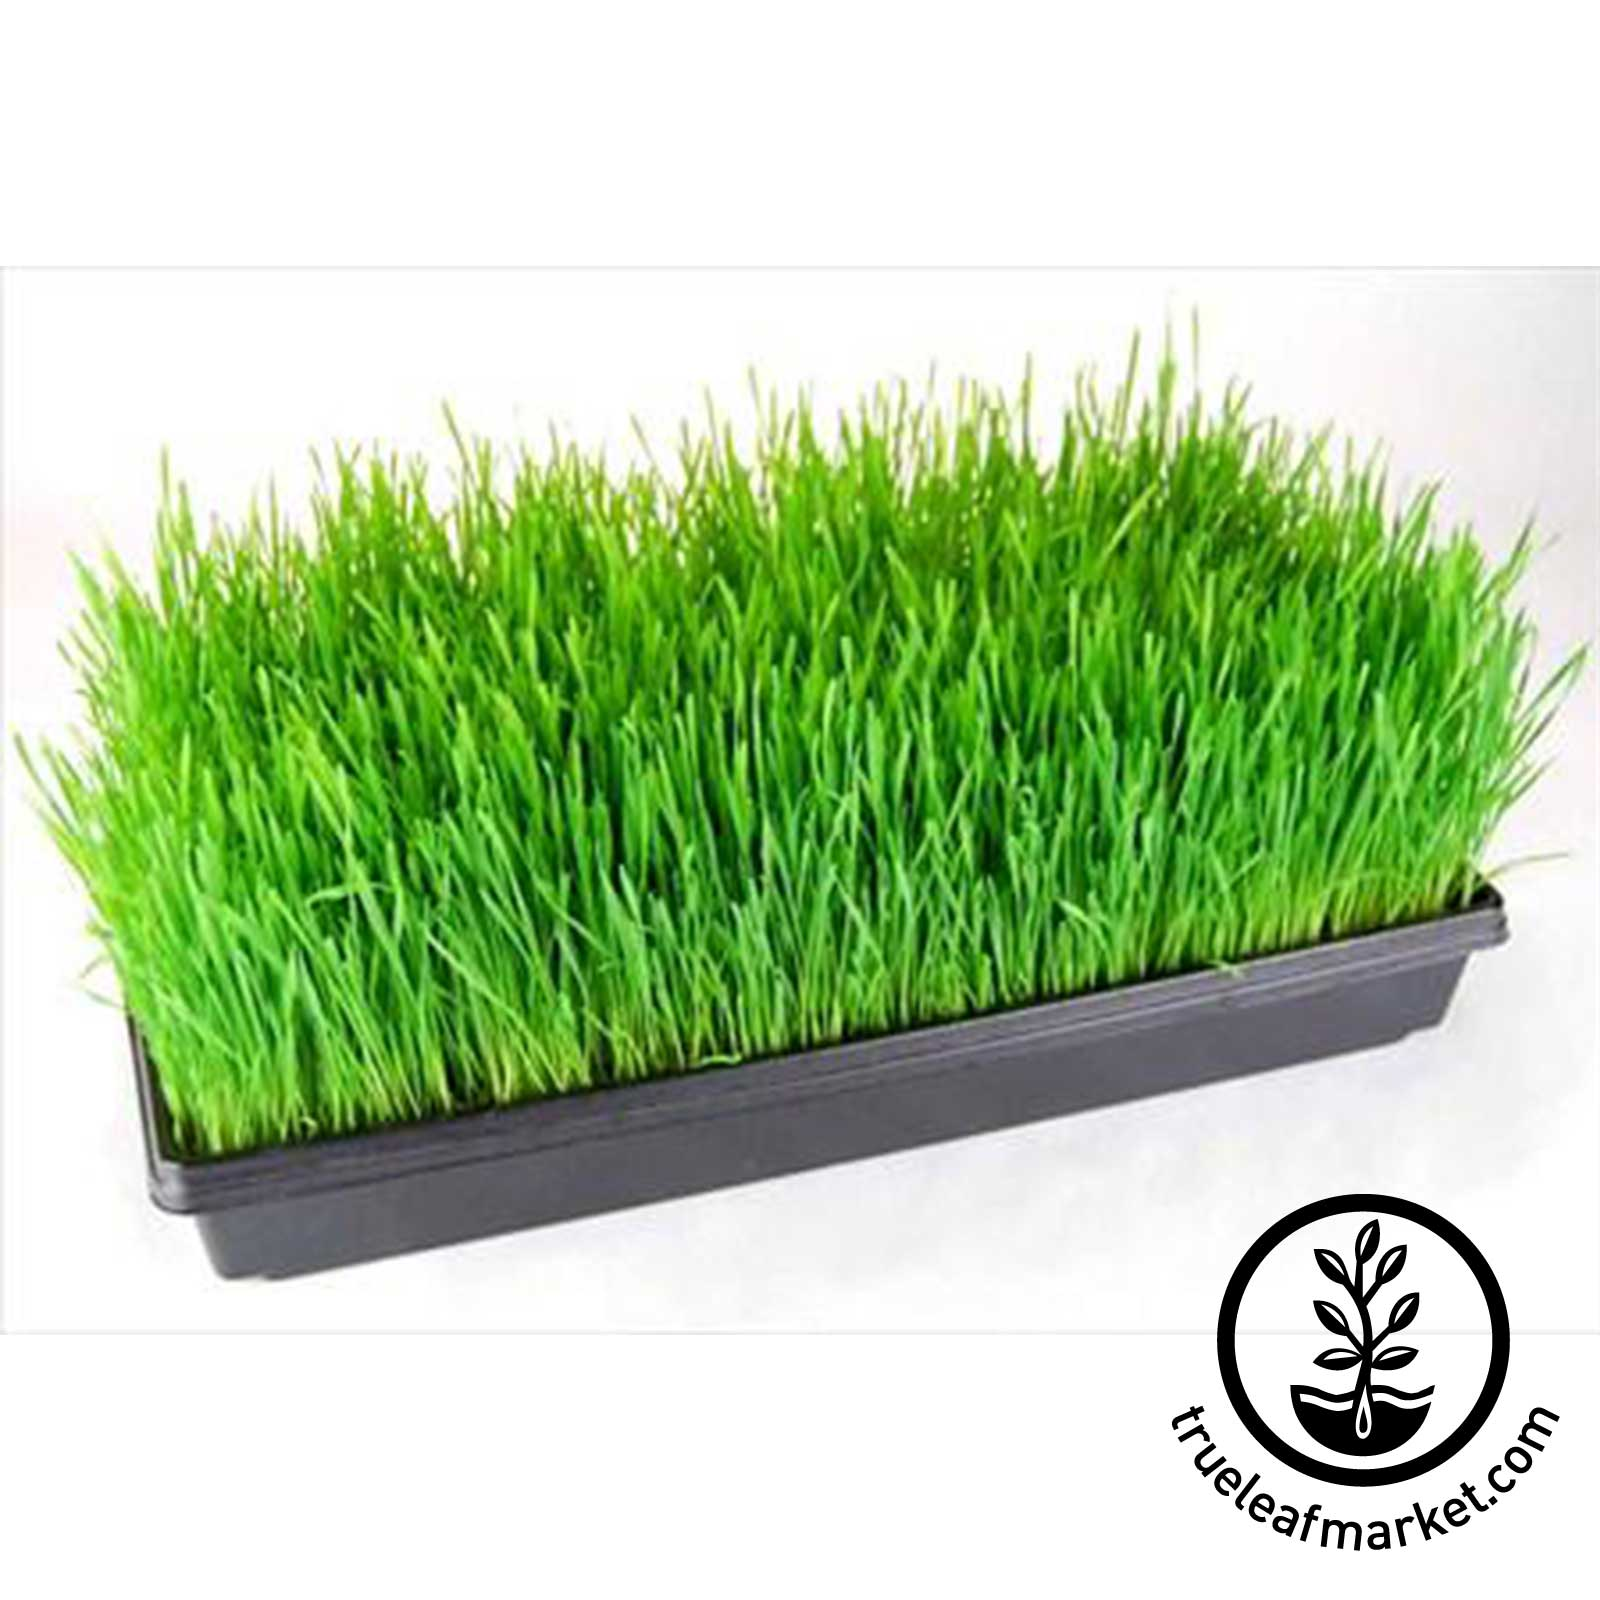 Organic Wheatgrass Grown in Trays